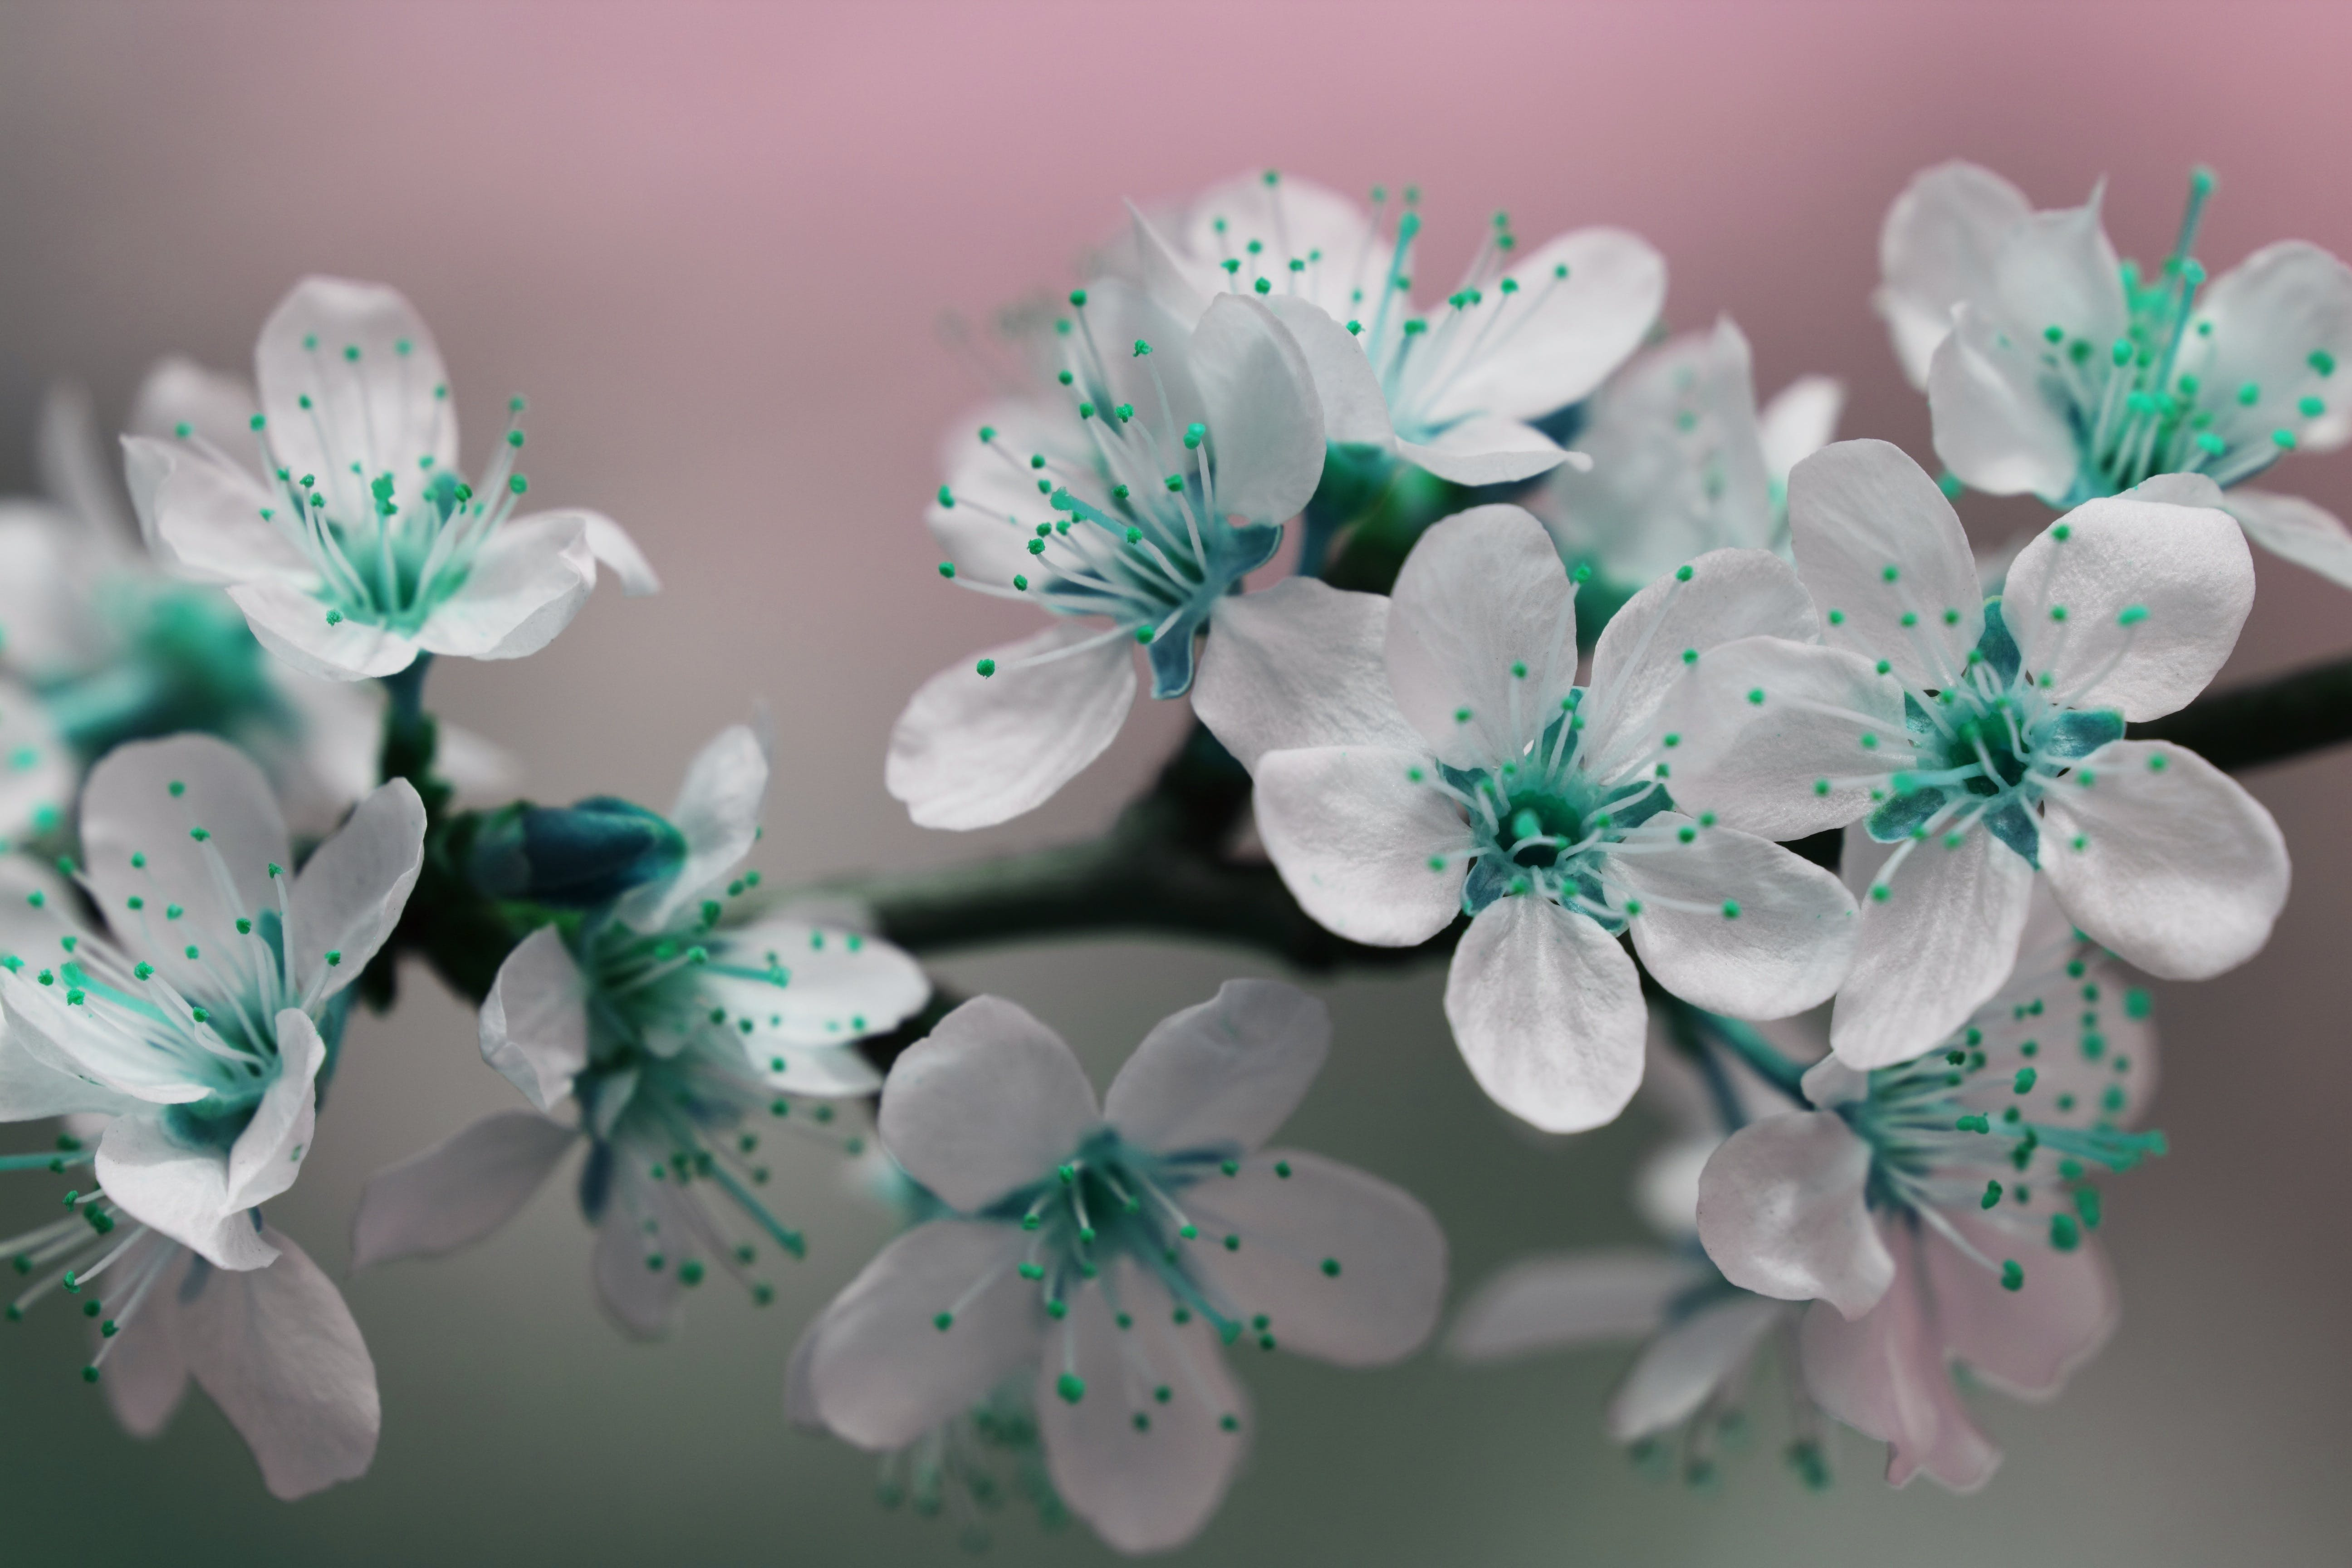 Free stock photo of nature, flowers, petals, blossoms